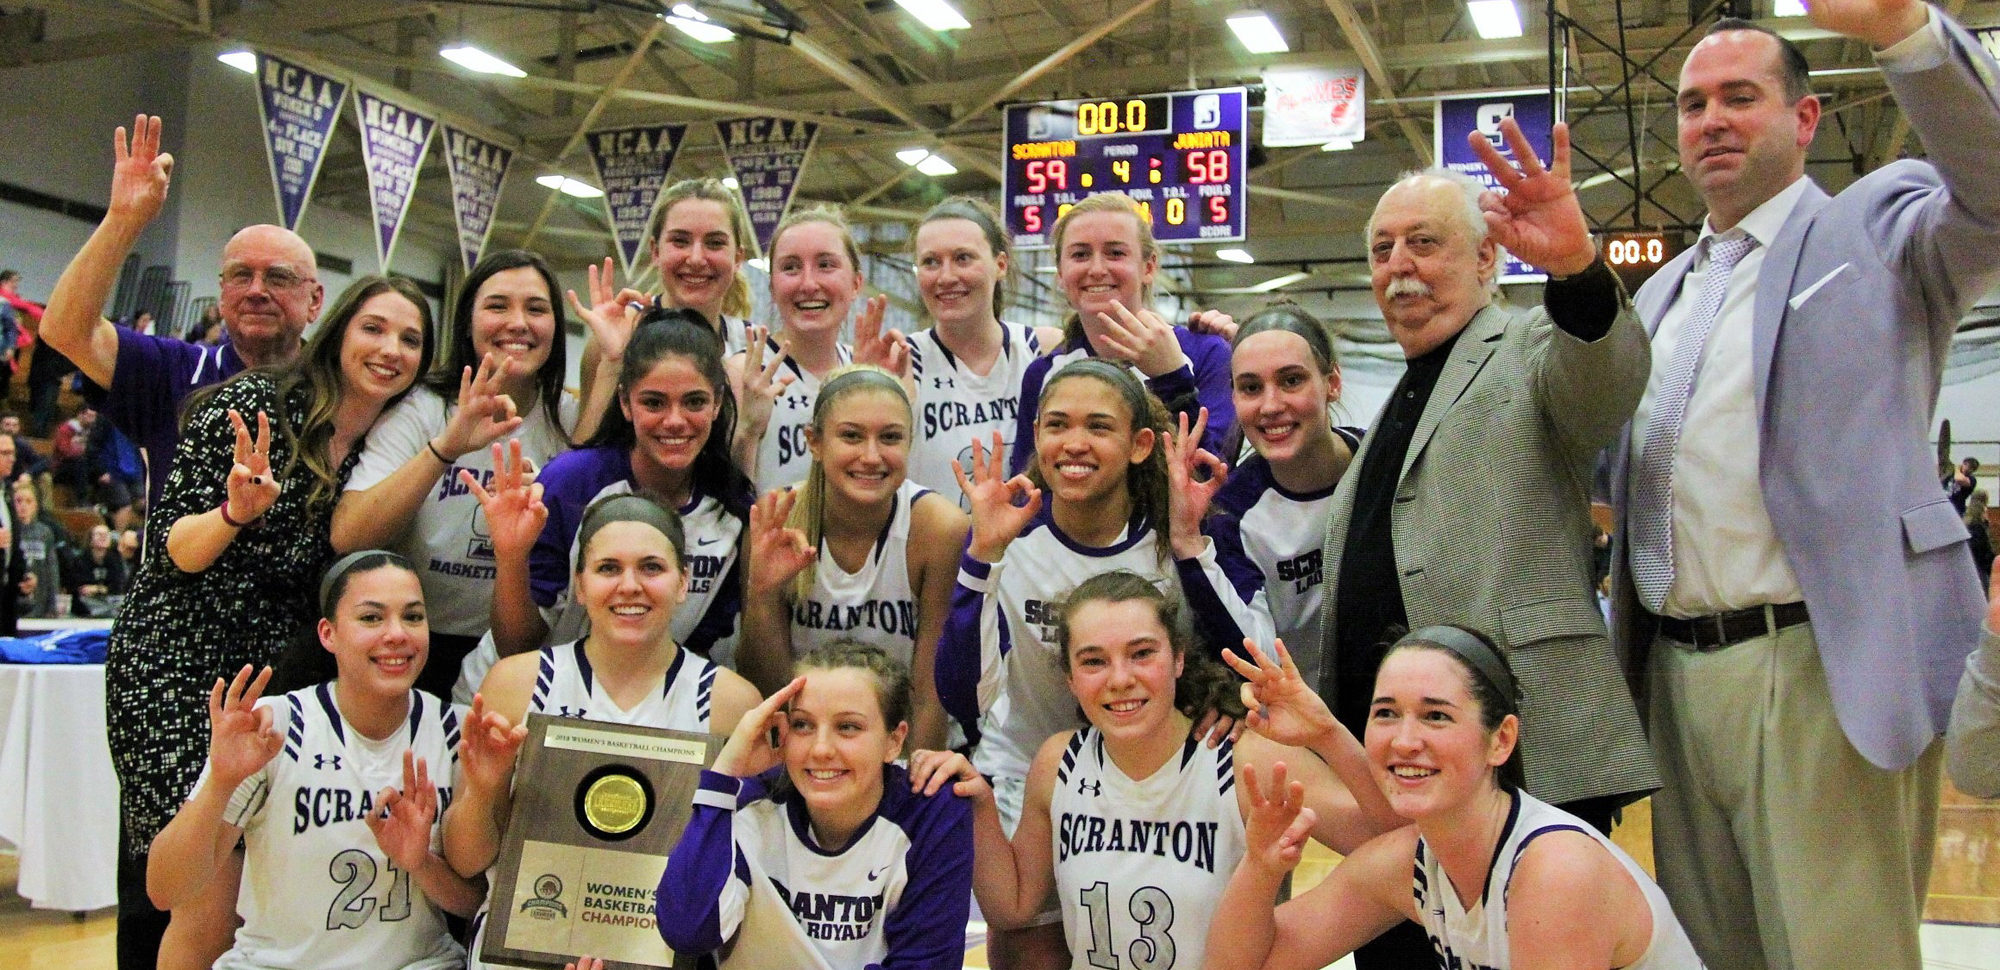 Scranton won its third straight Landmark Conference championship with a thrilling 59-58 overtime victory over Juniata on Saturday.